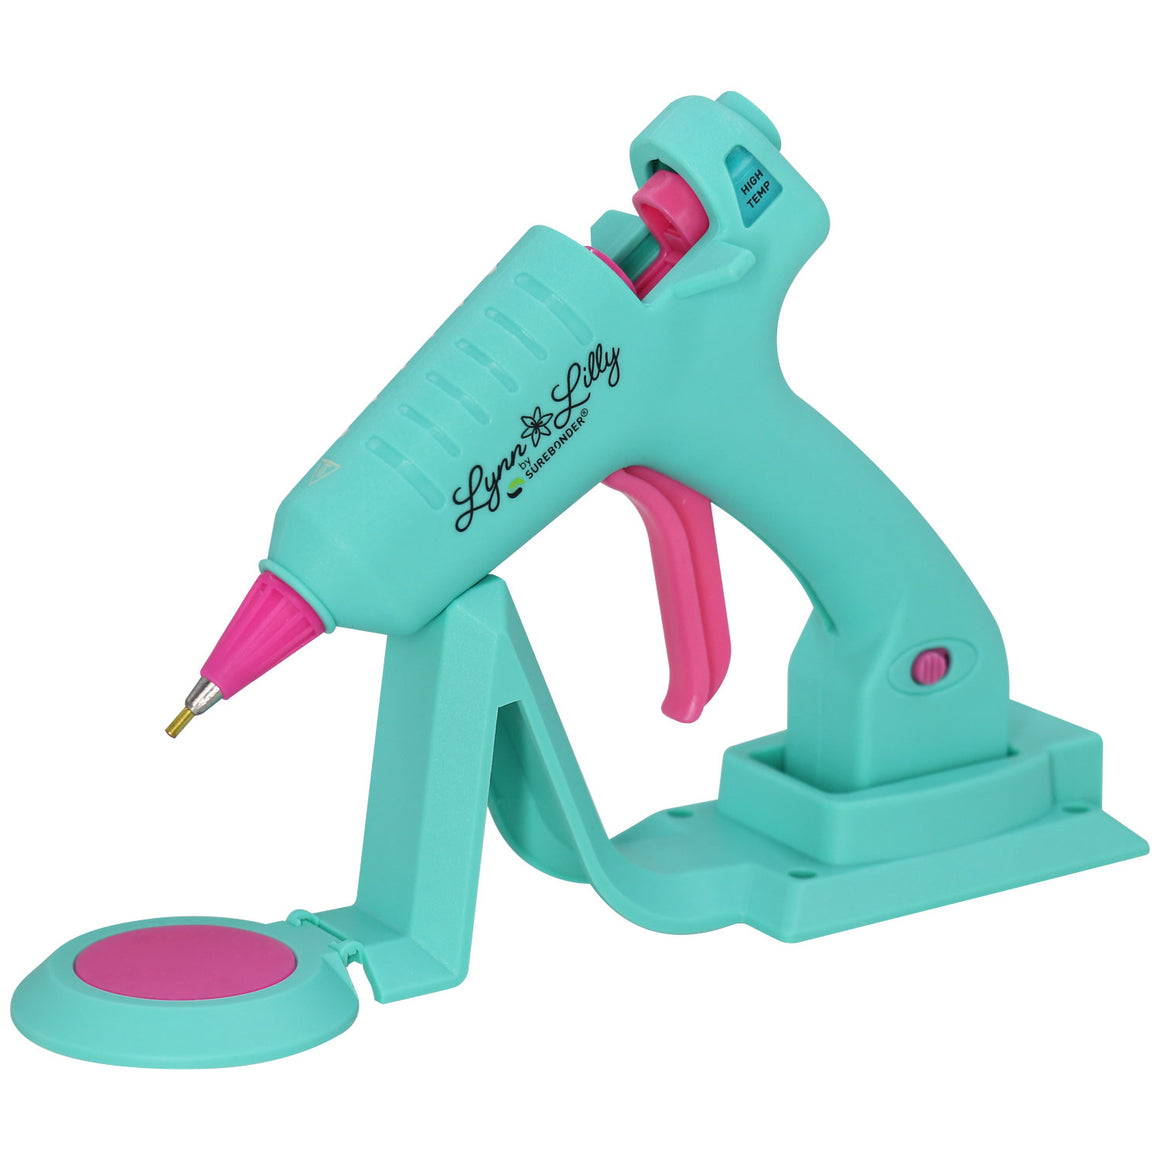 Lynn Lilly Edition Cordless/Corded Detail Tip Mini Glue Gun - Surebonder